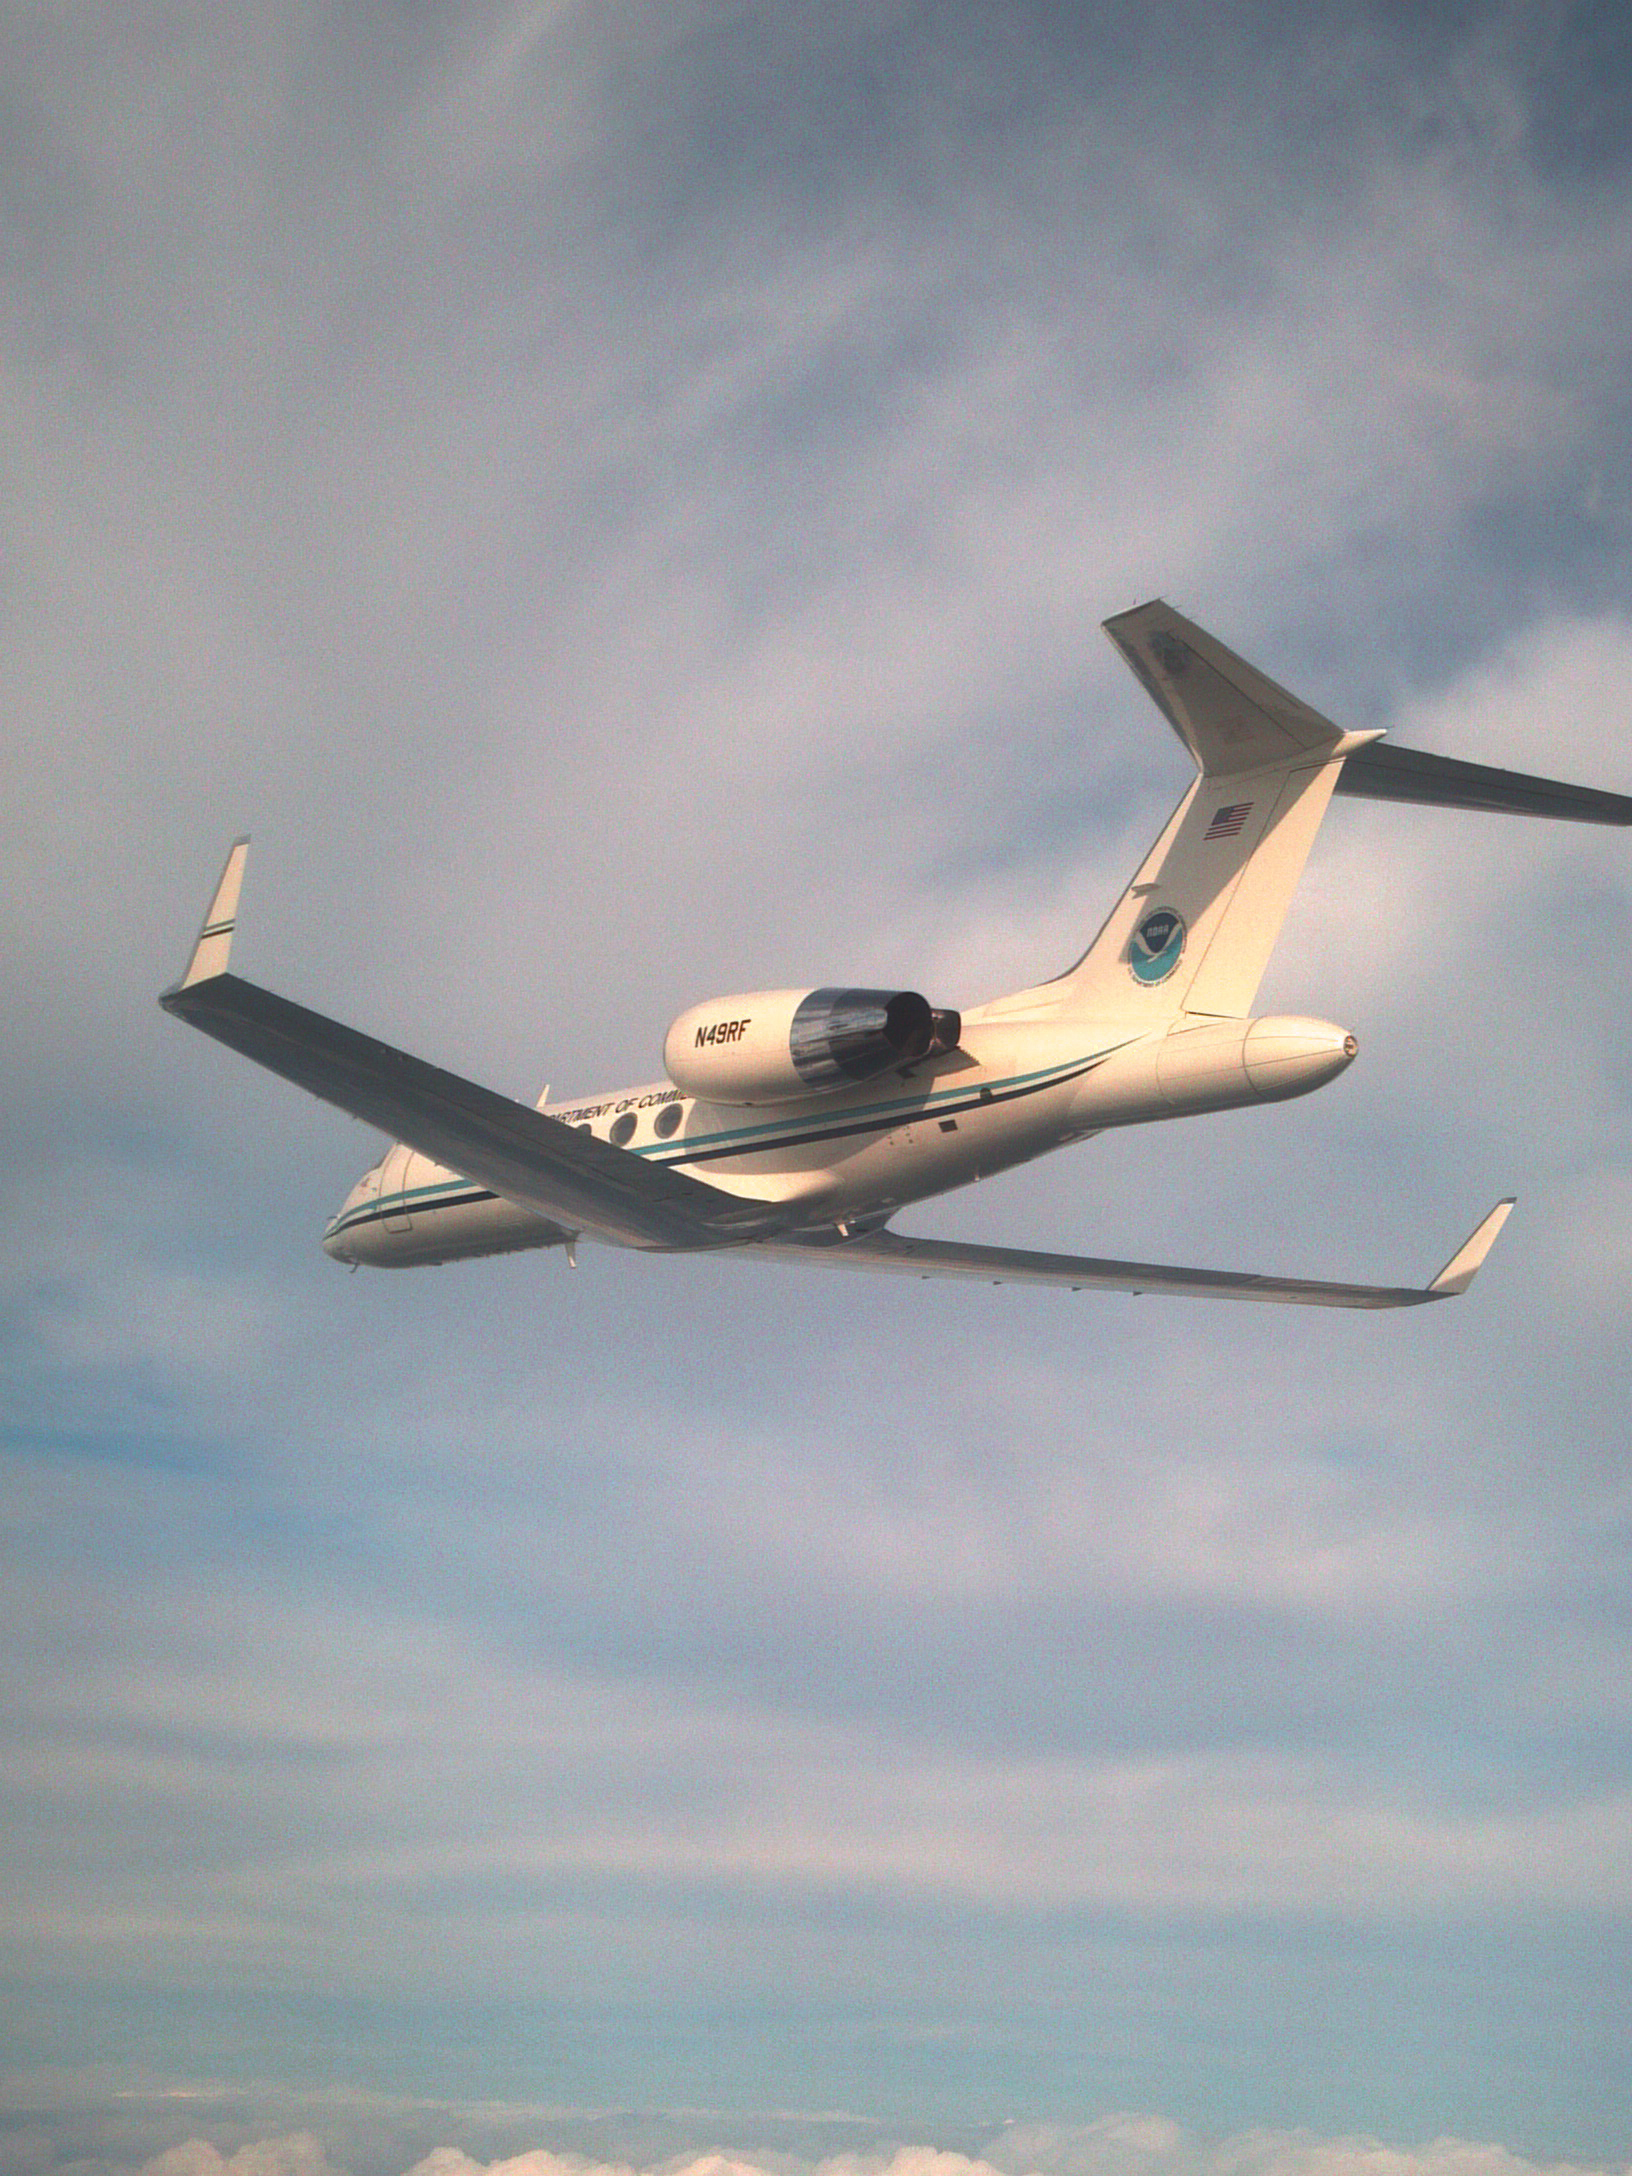 NOAA Gulfstream IV in Flight - Photo by NOAA